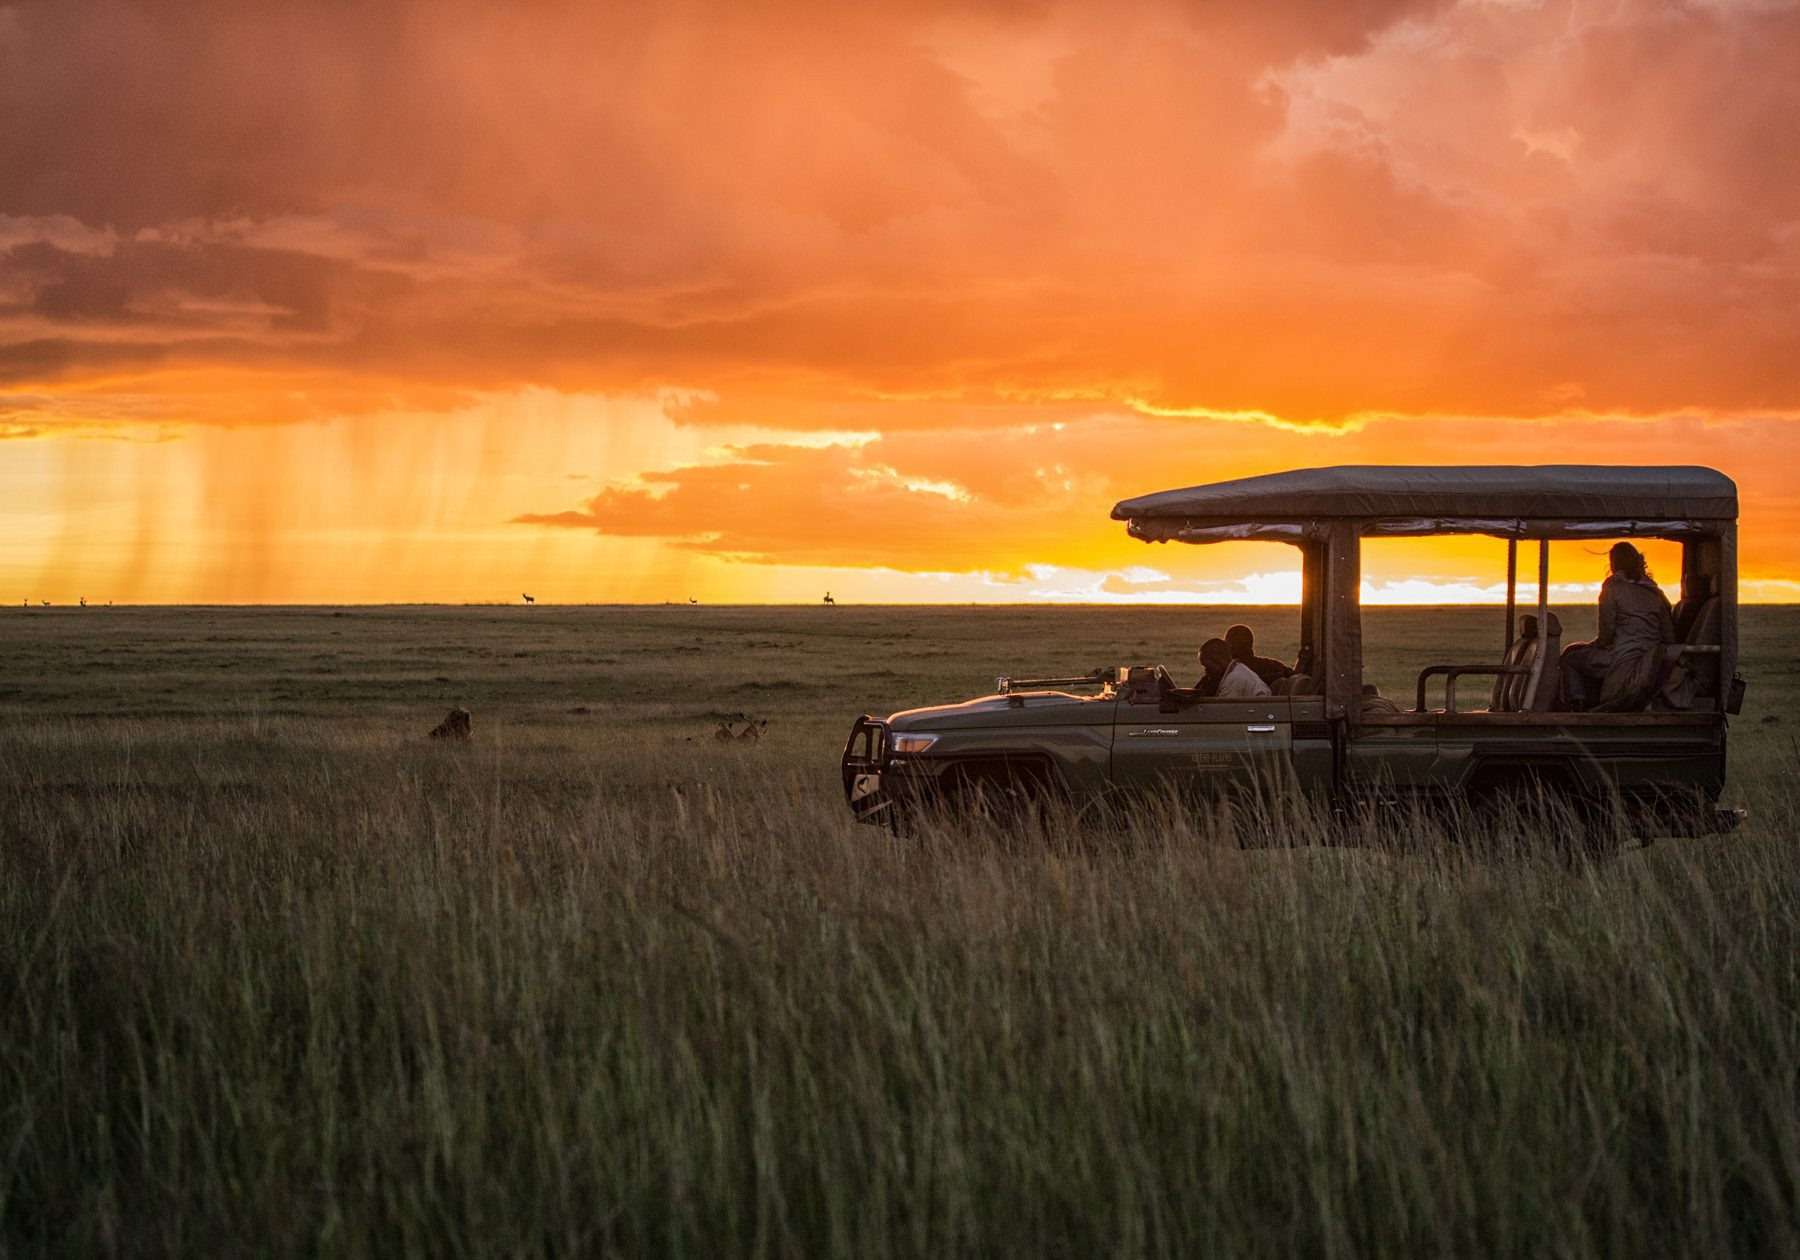 game vehicle on the open plains at sunset